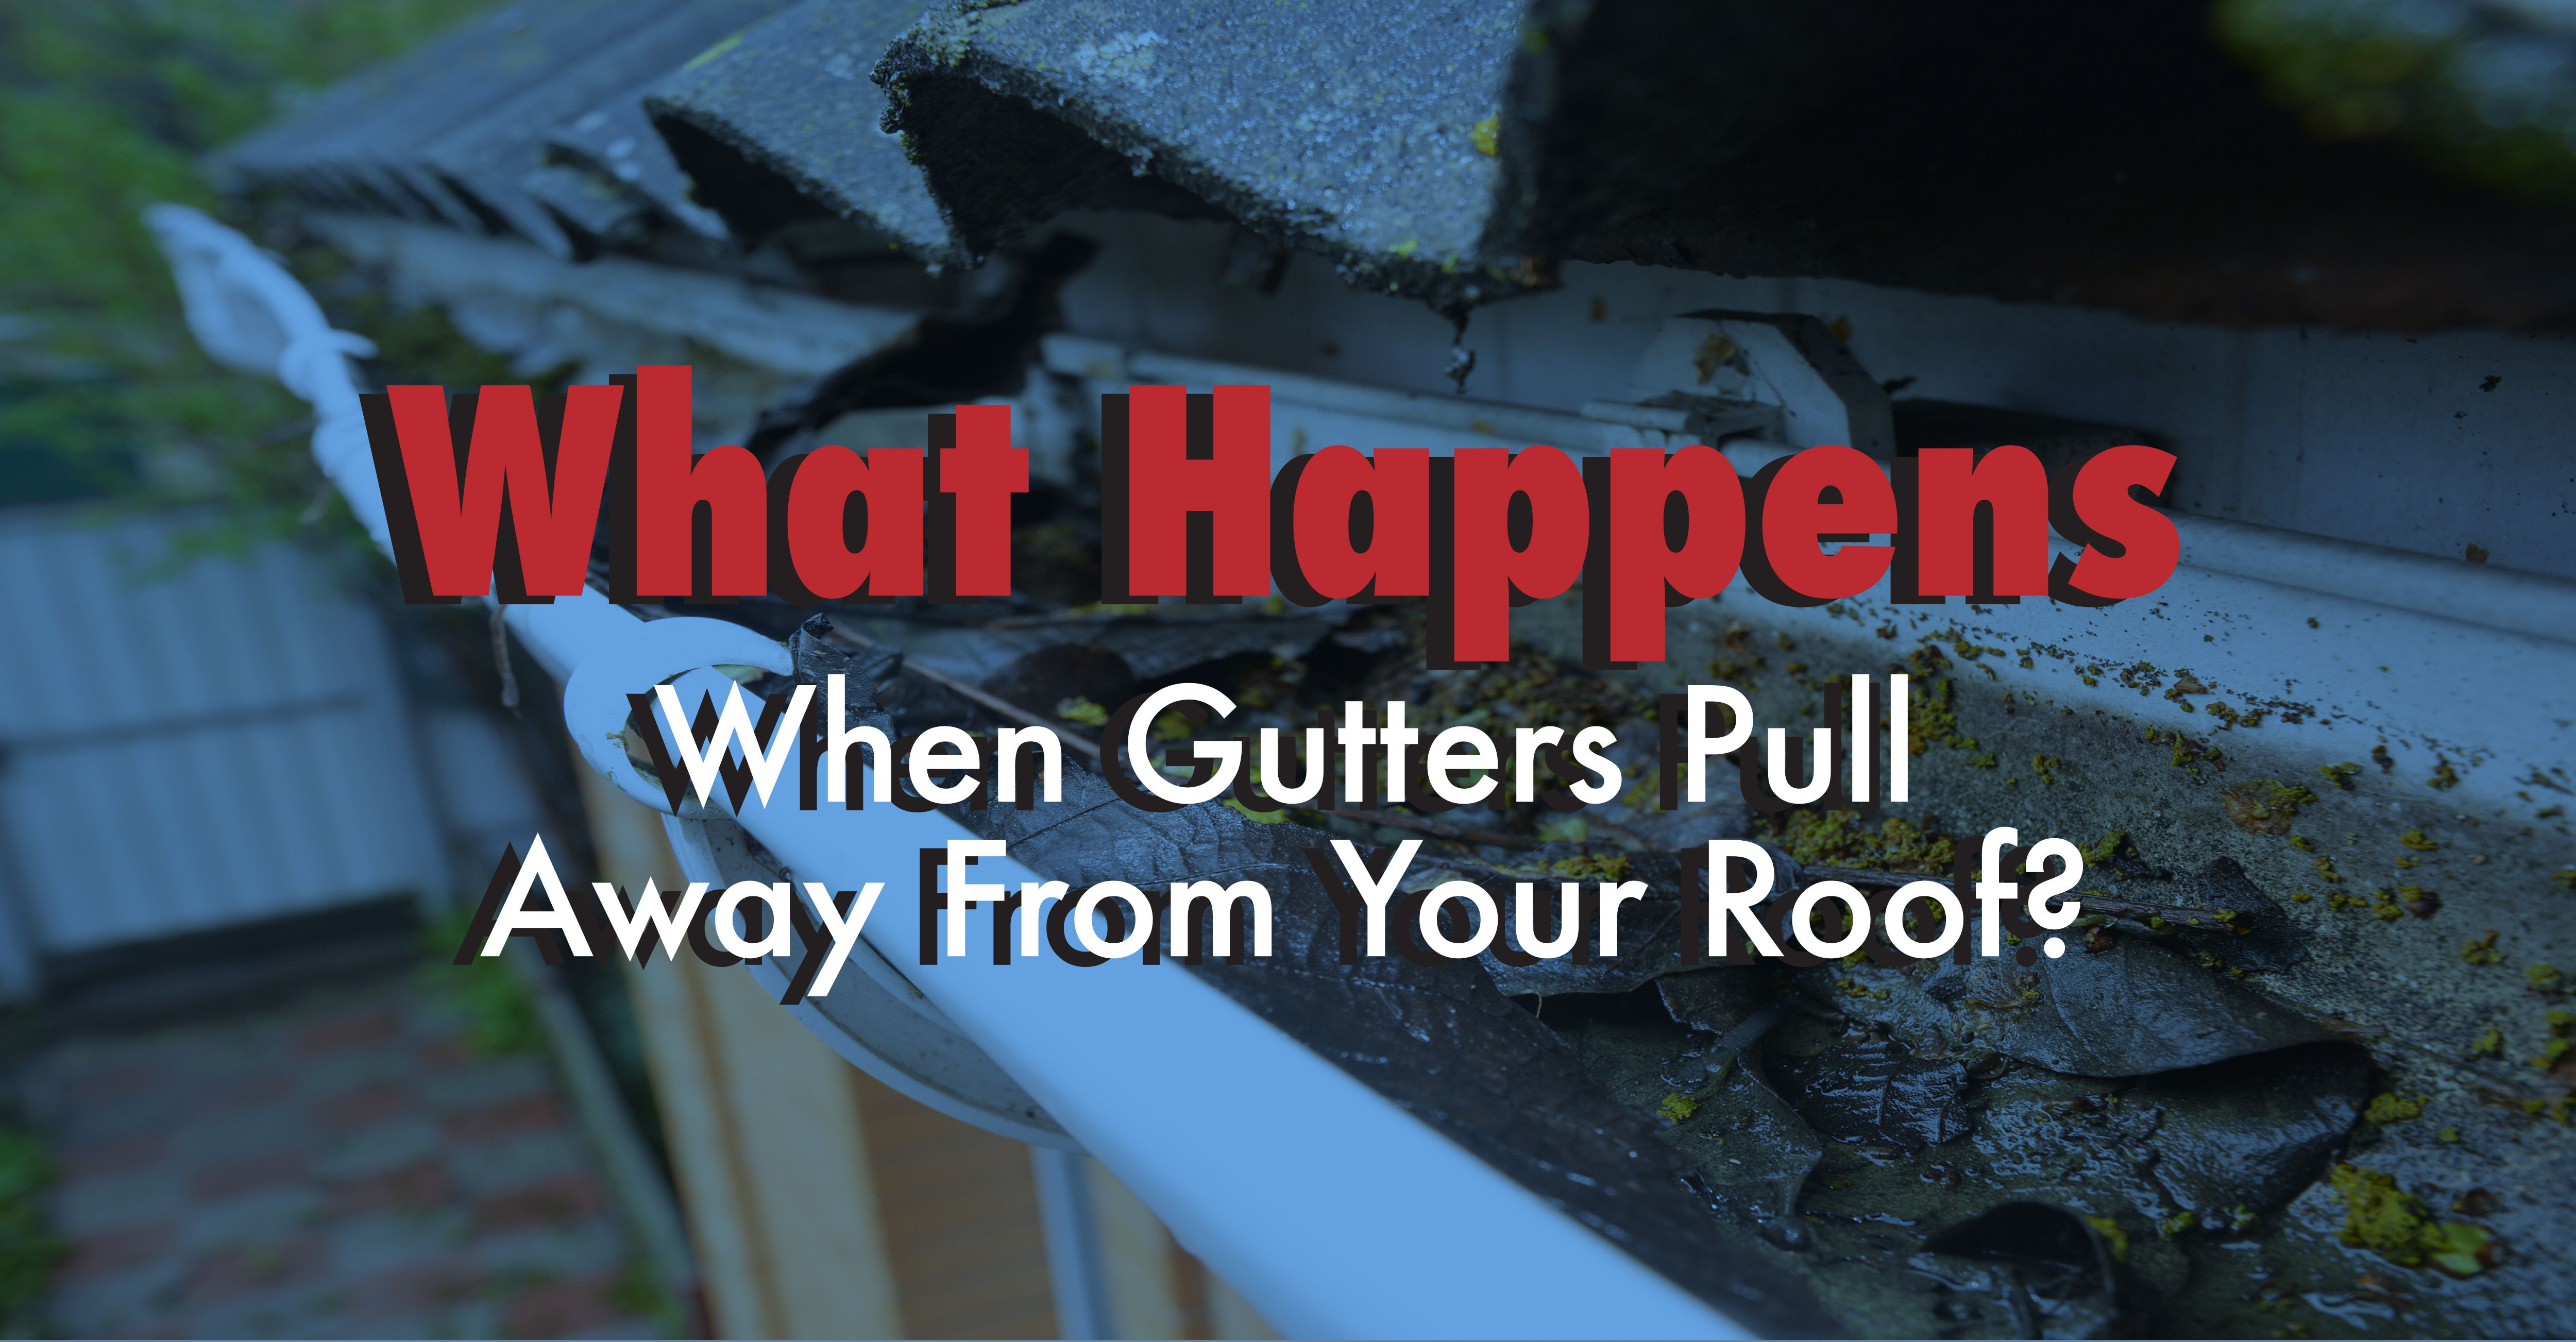 What Happens When Gutters Pull Away from Your Roof?